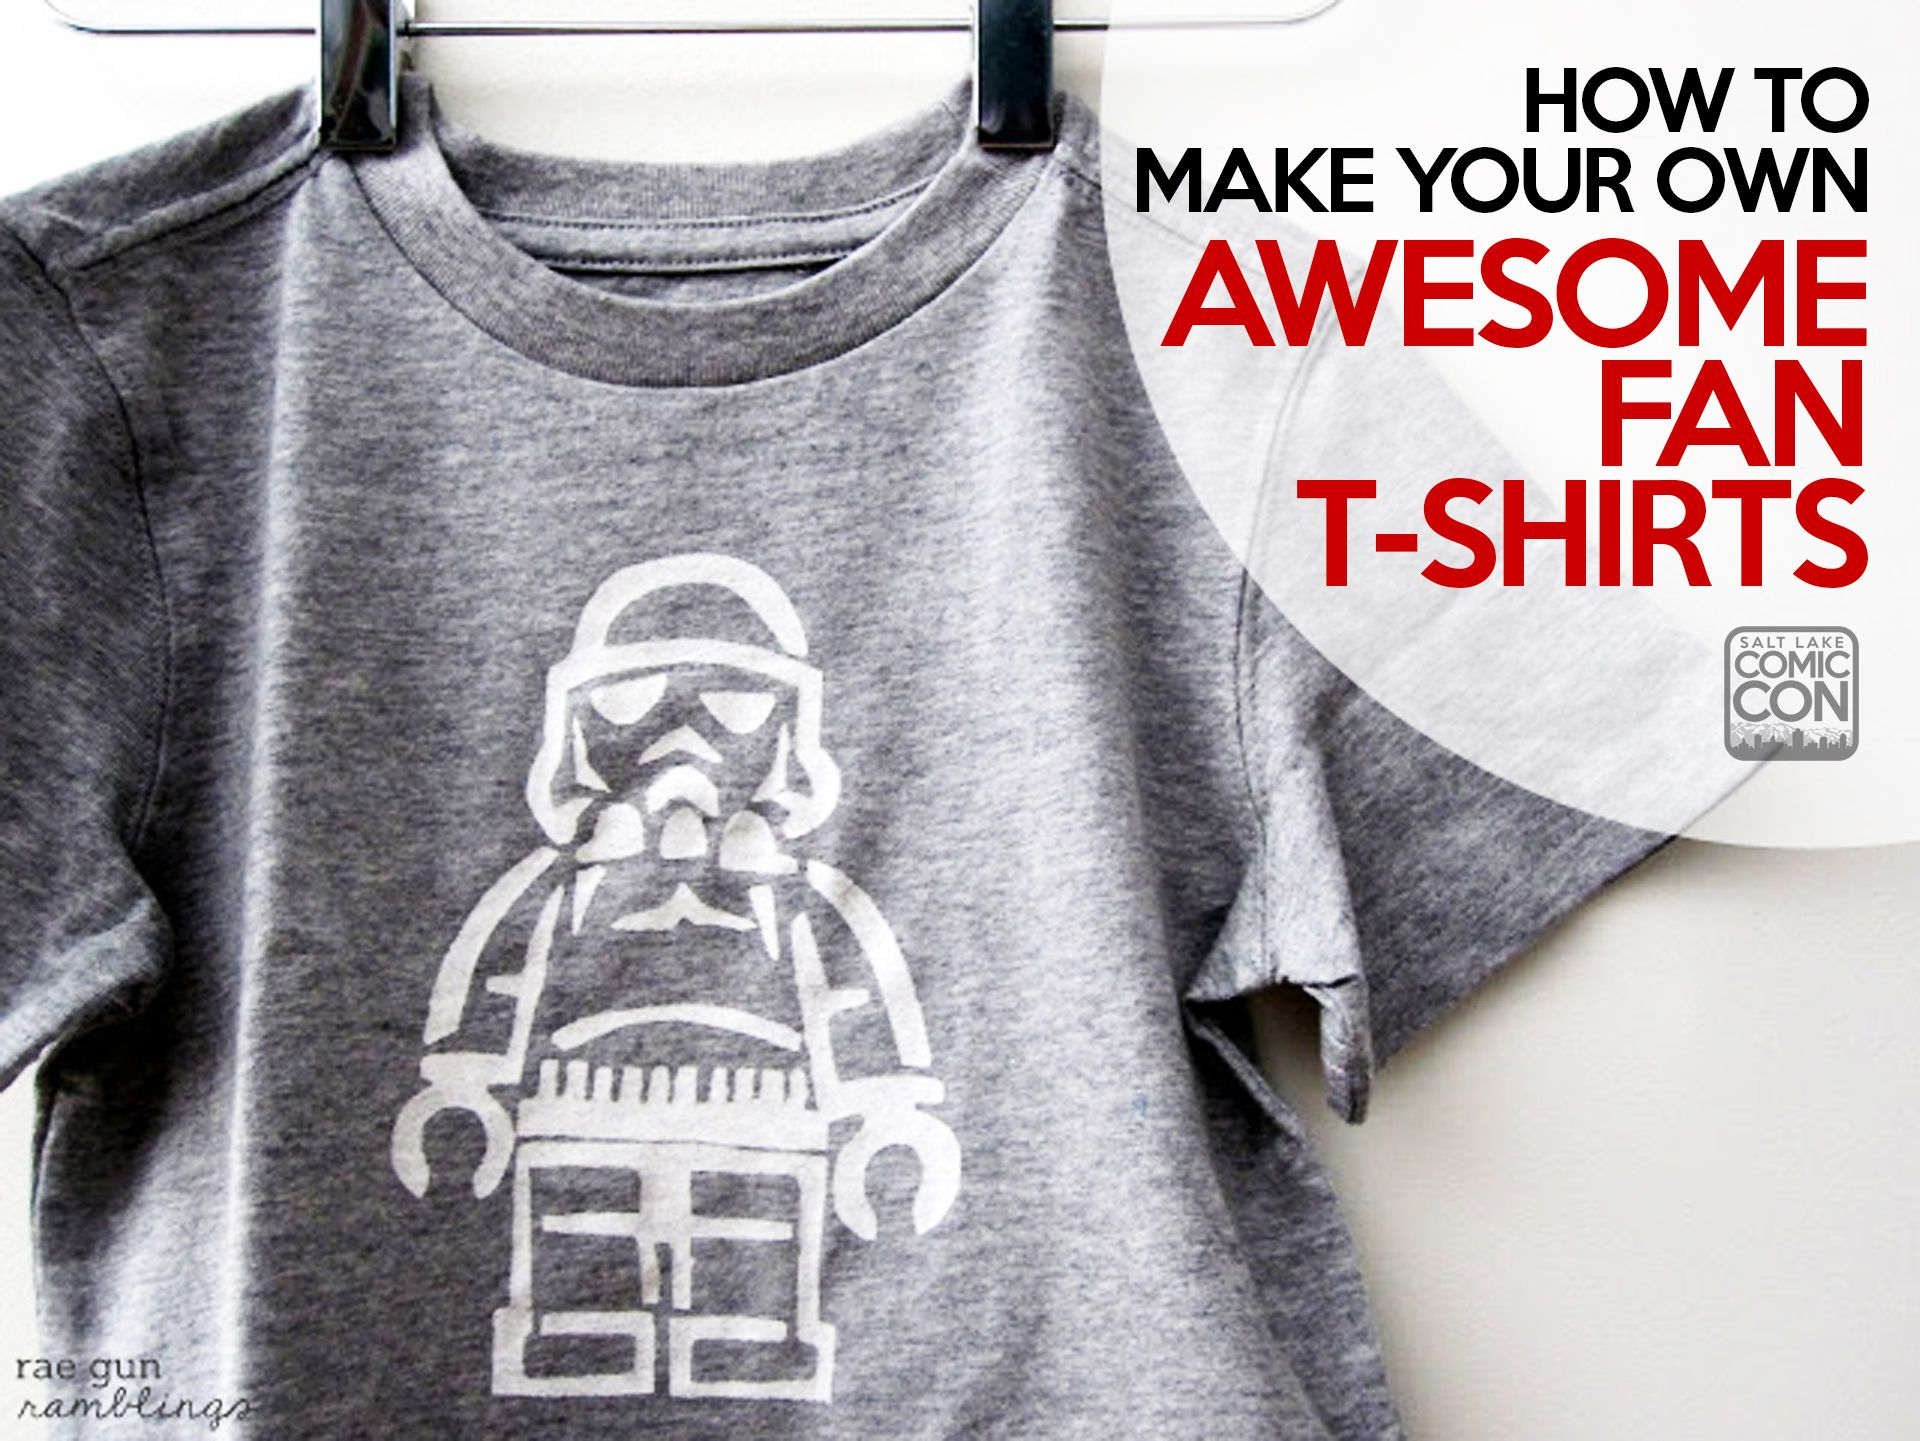 Black t shirt transfer paper - How To Make Your Own Awesome Fan T Shirts Freezer Paper Stenciling Heat